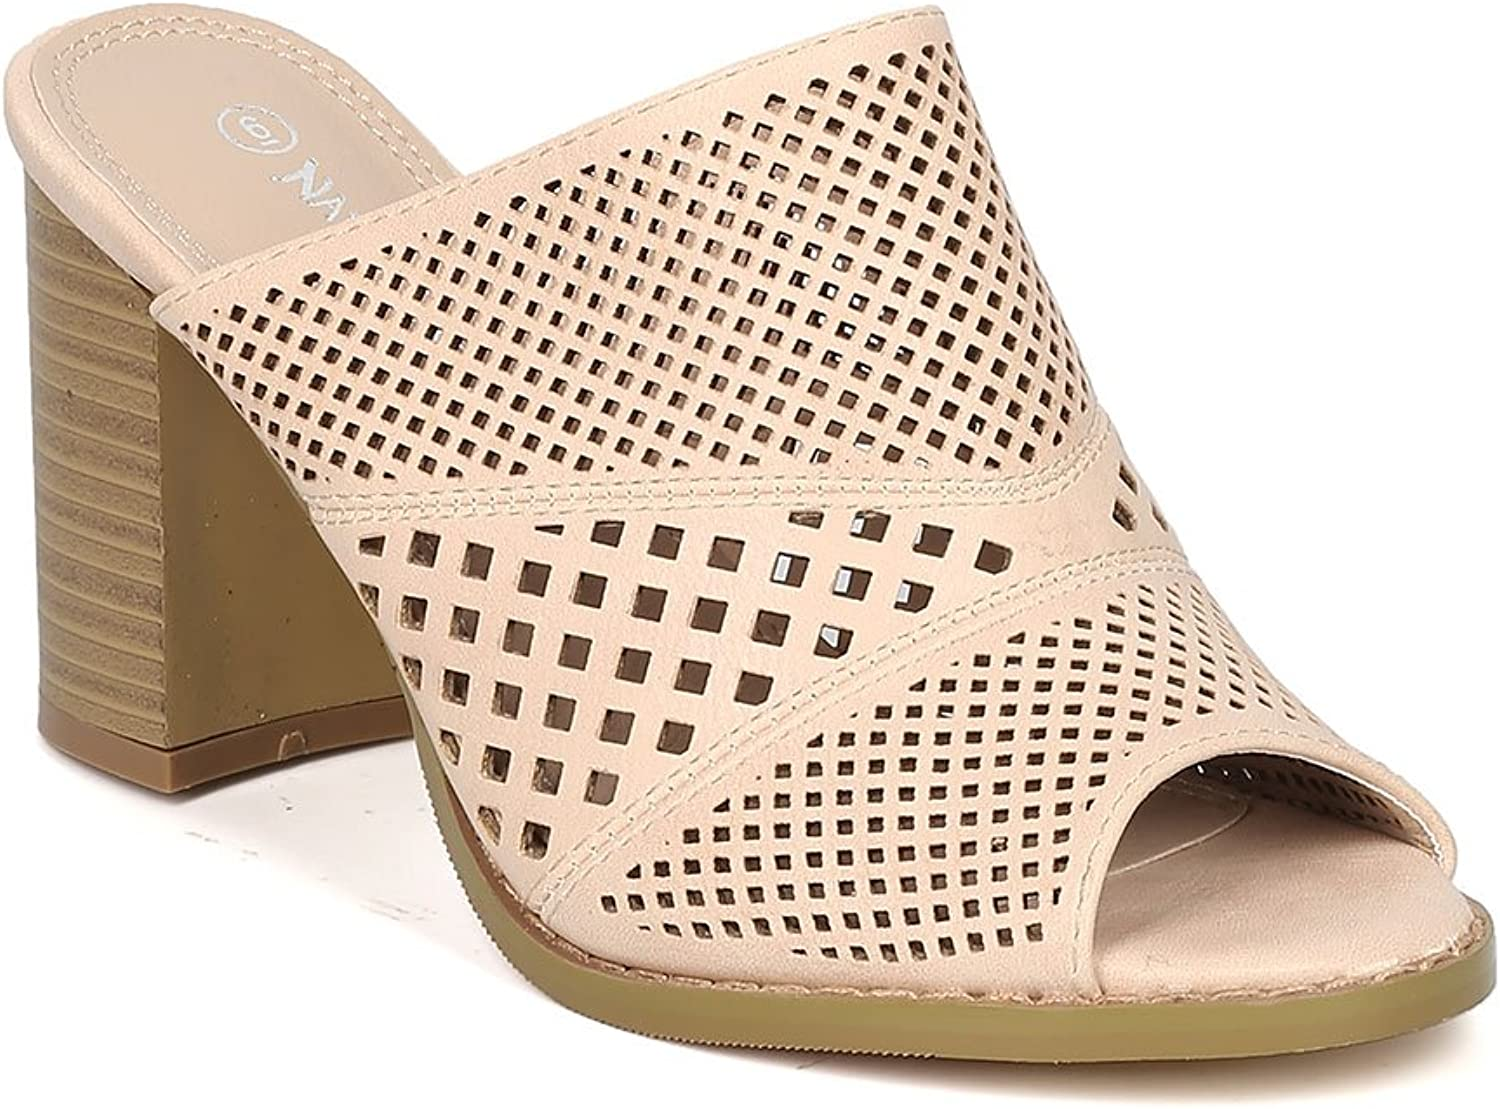 Women Leatherette Peep Toe Perforated Chunky Heel Mule GF53